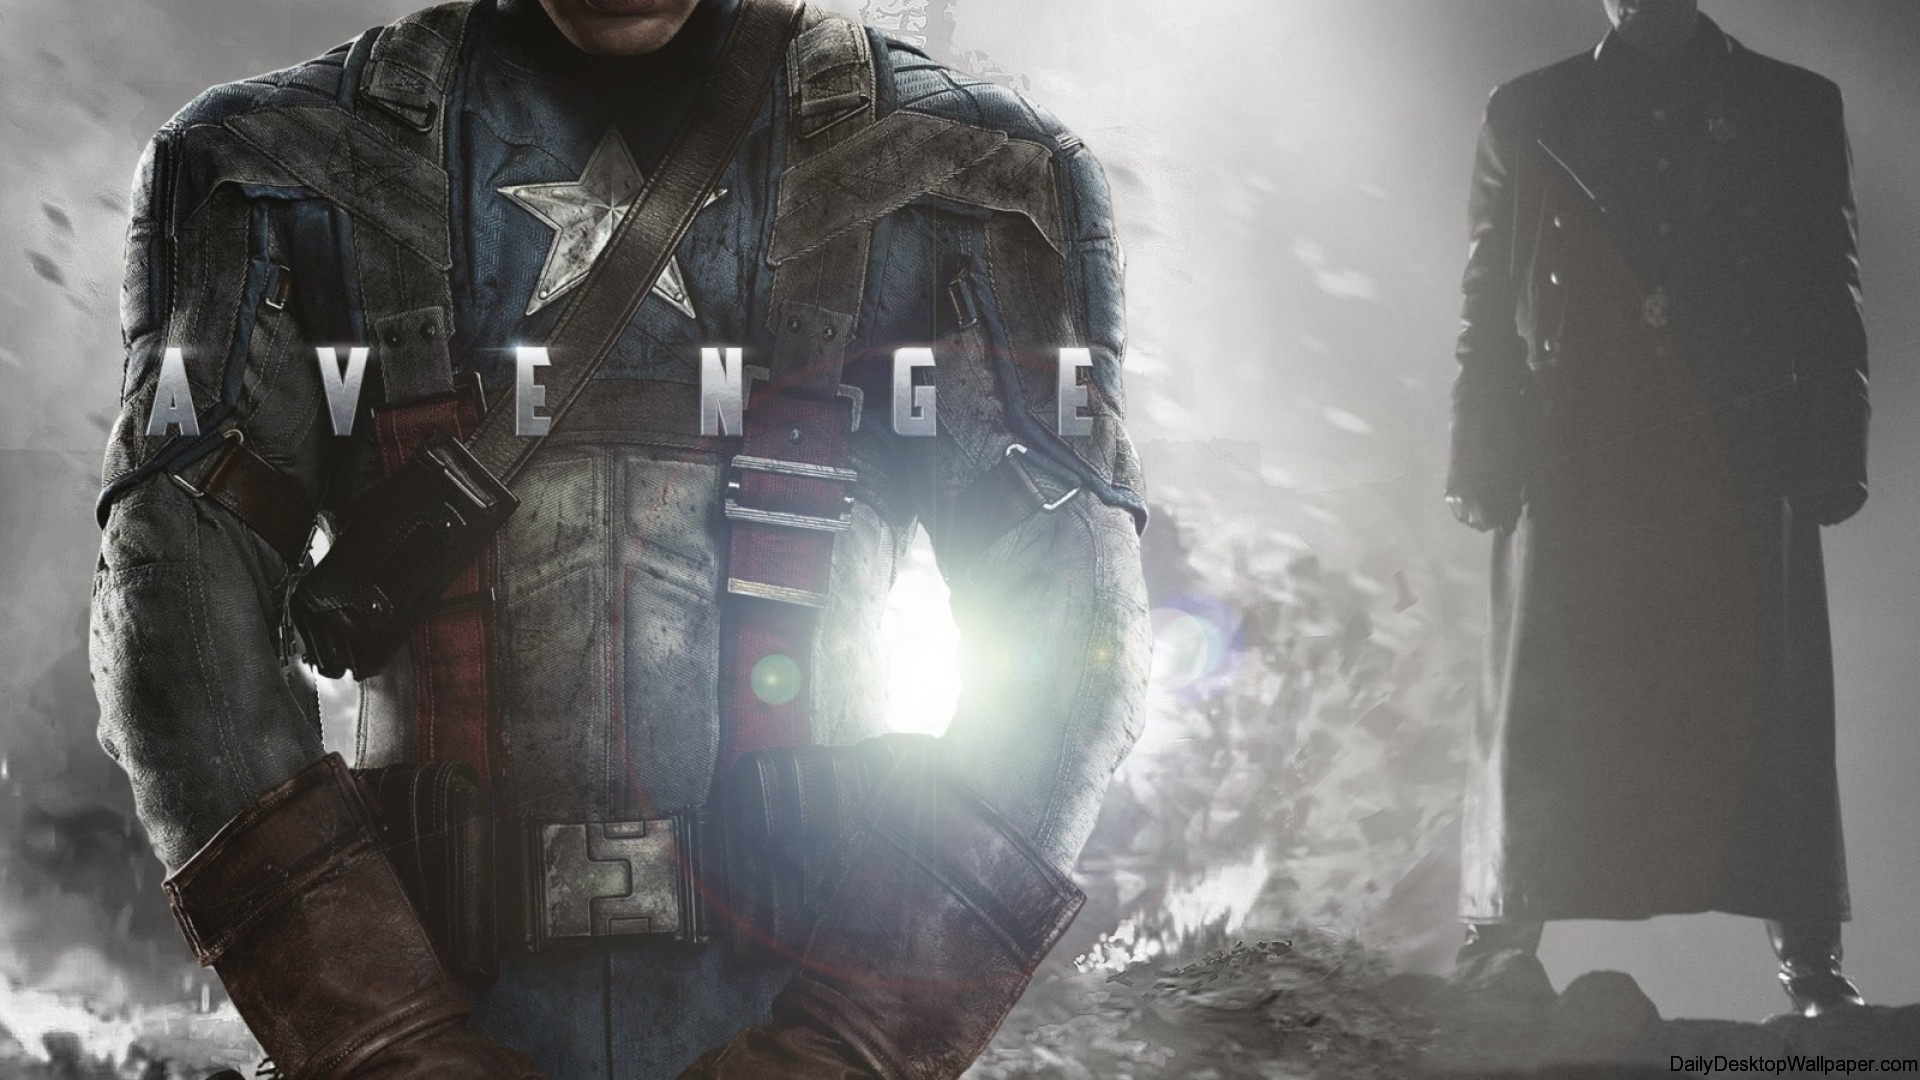 Captain America Avenger wallpaper